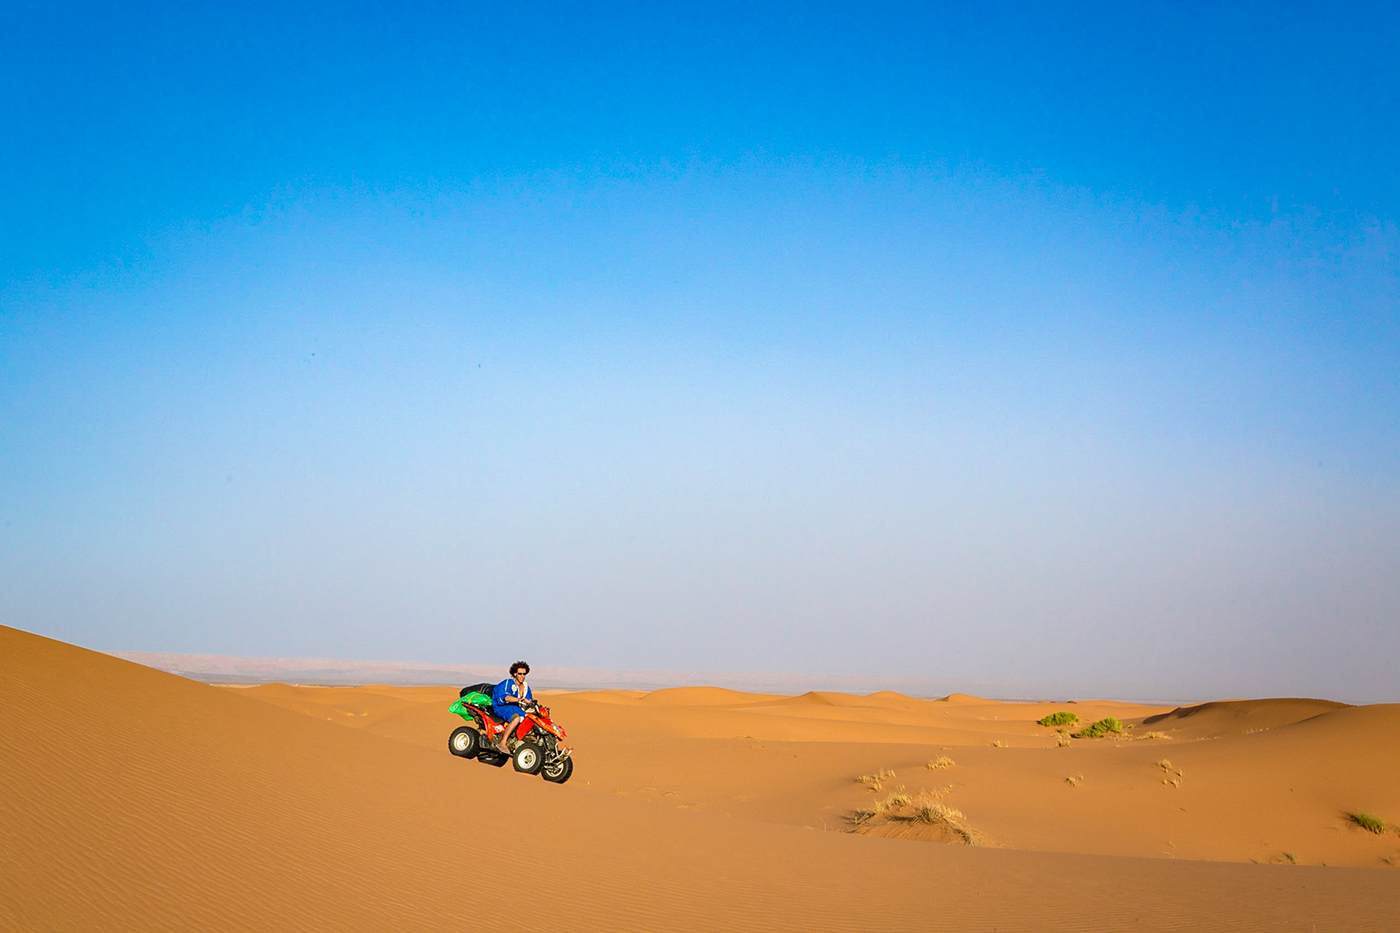 Morocco people tradition desert city life place traditional life  Urban life